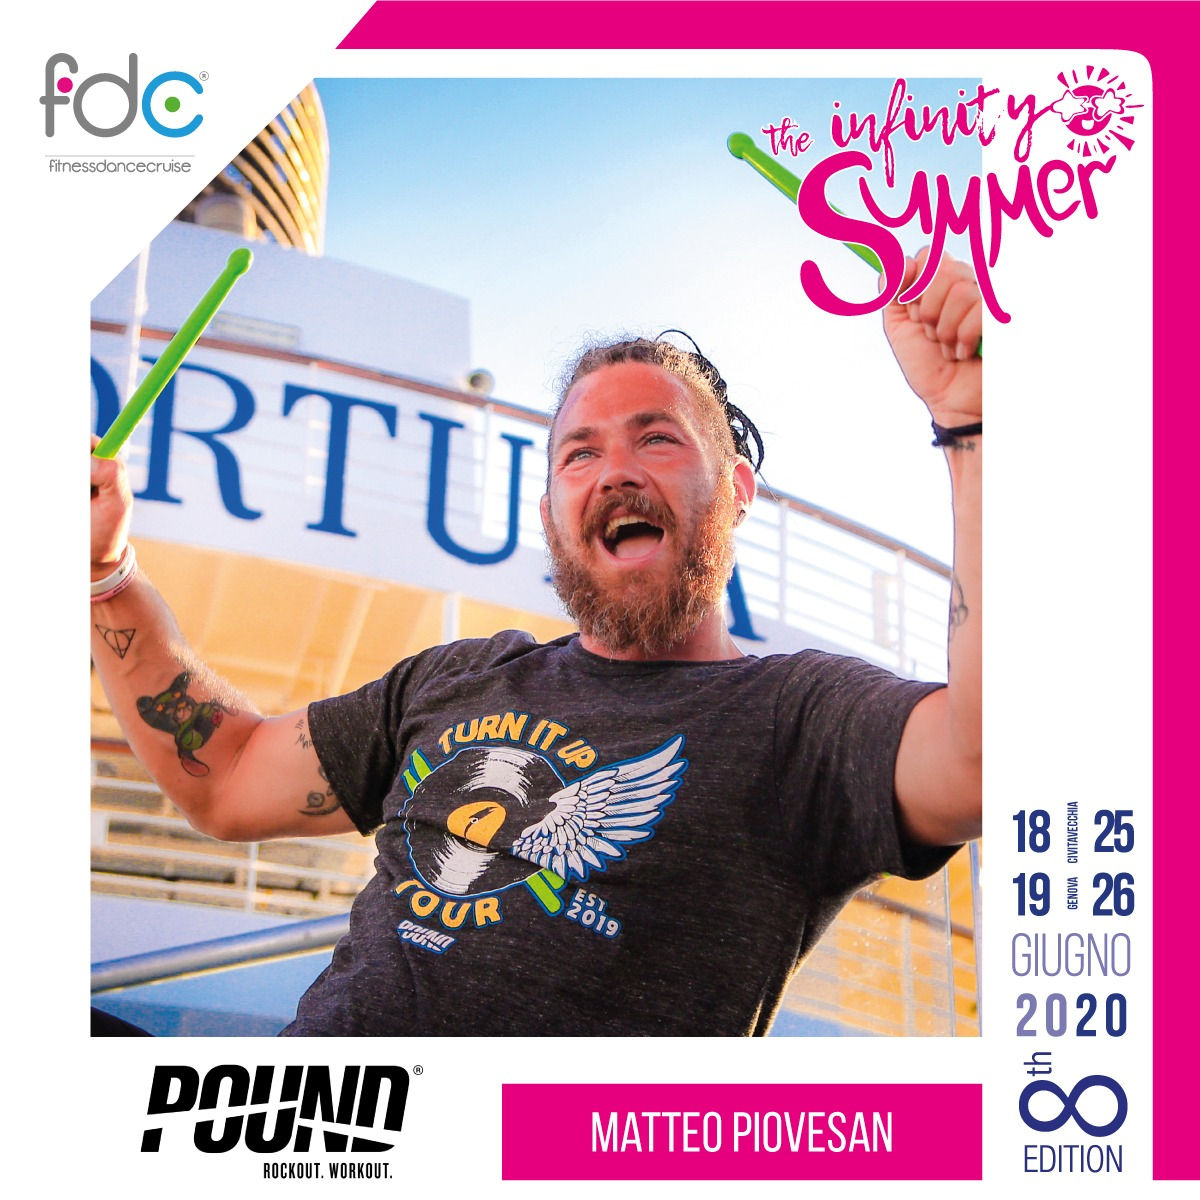 Pound FDC Presenter Matteo Piovesan